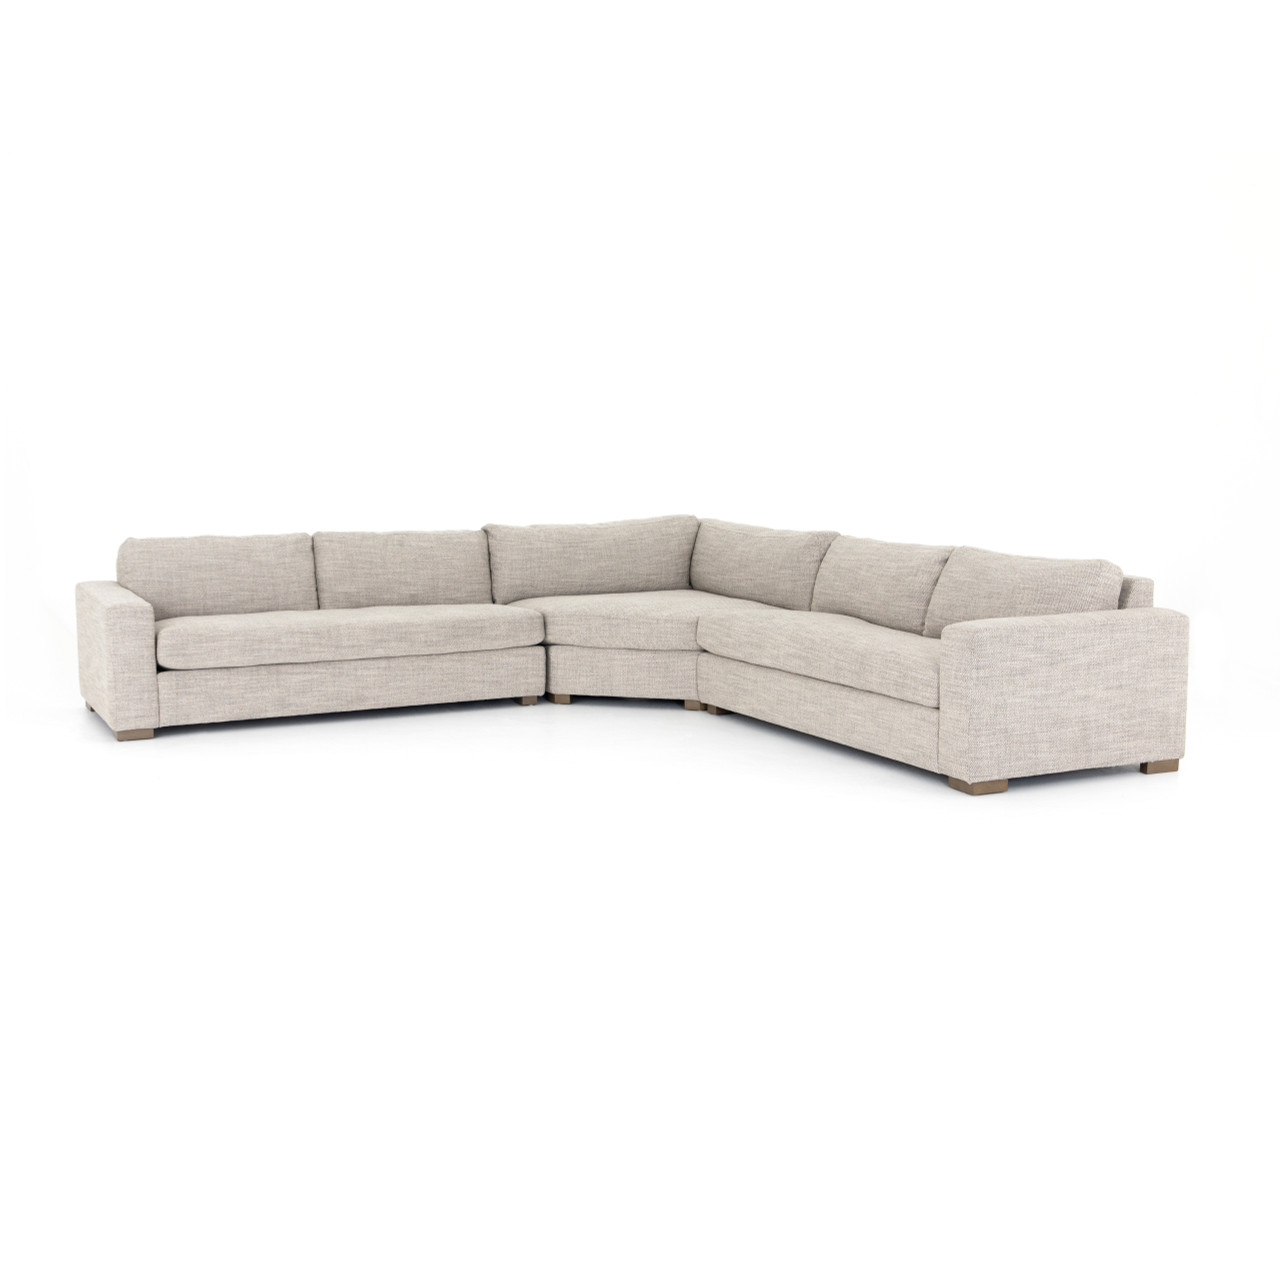 Boone 3 PC Small Corner Sectional